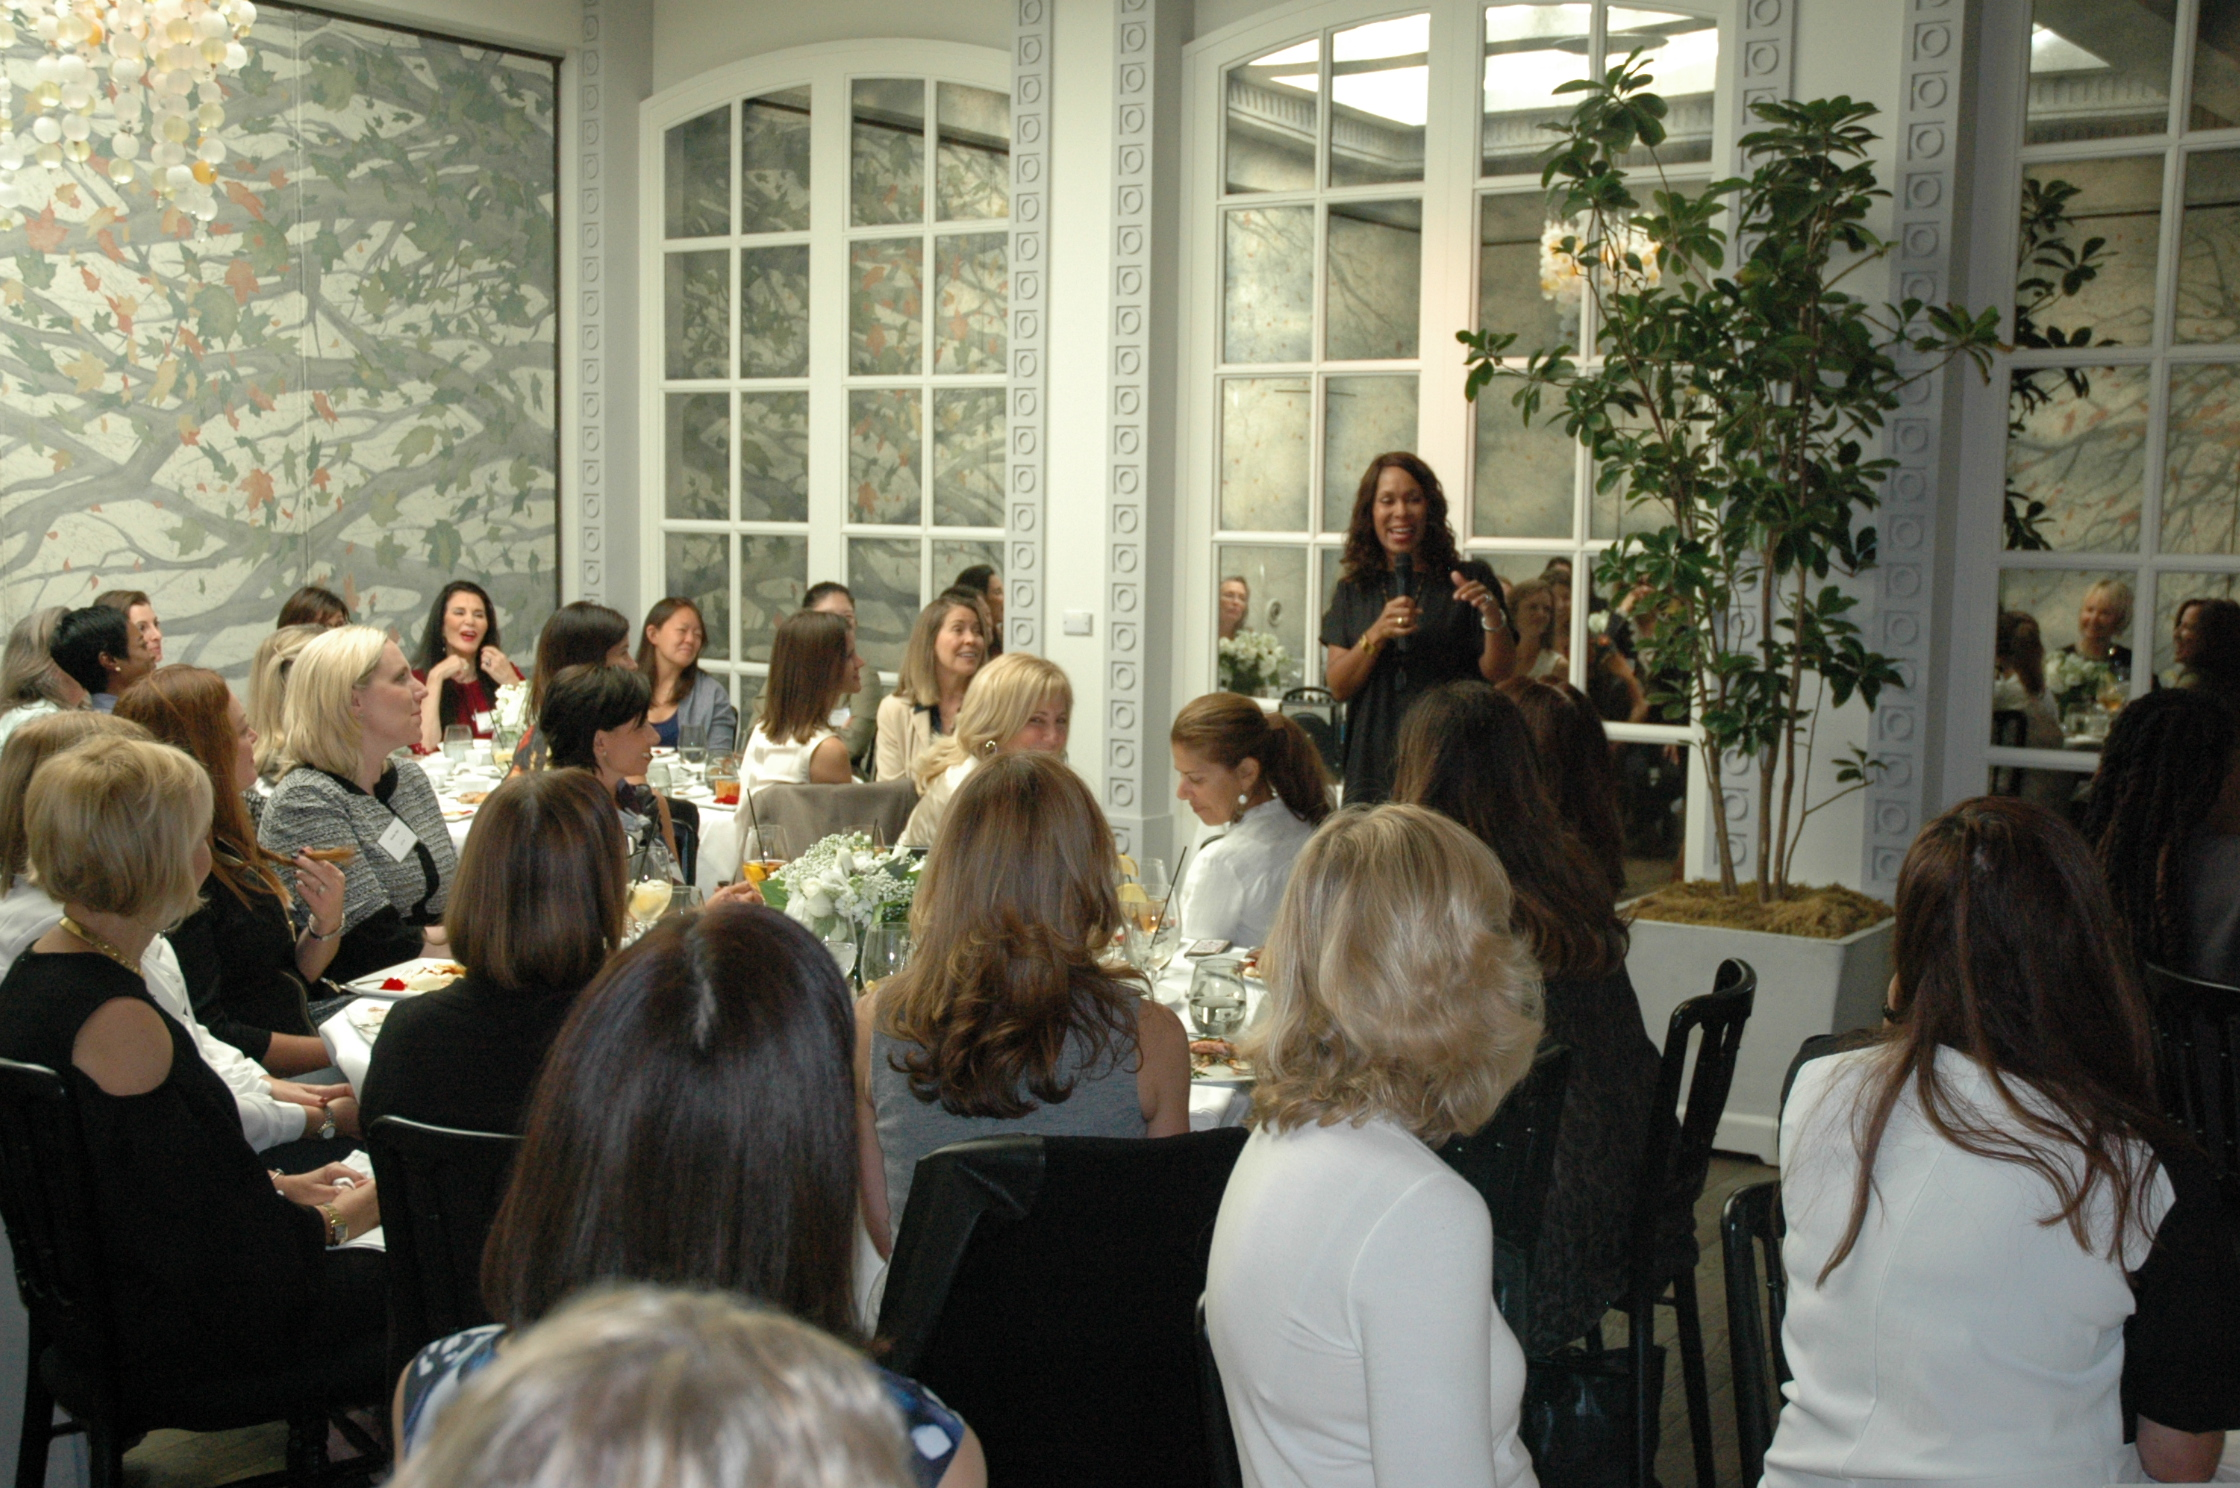 Sept 2016 - Channing Dungey, President, ABC Entertainment sharing her story with WLC